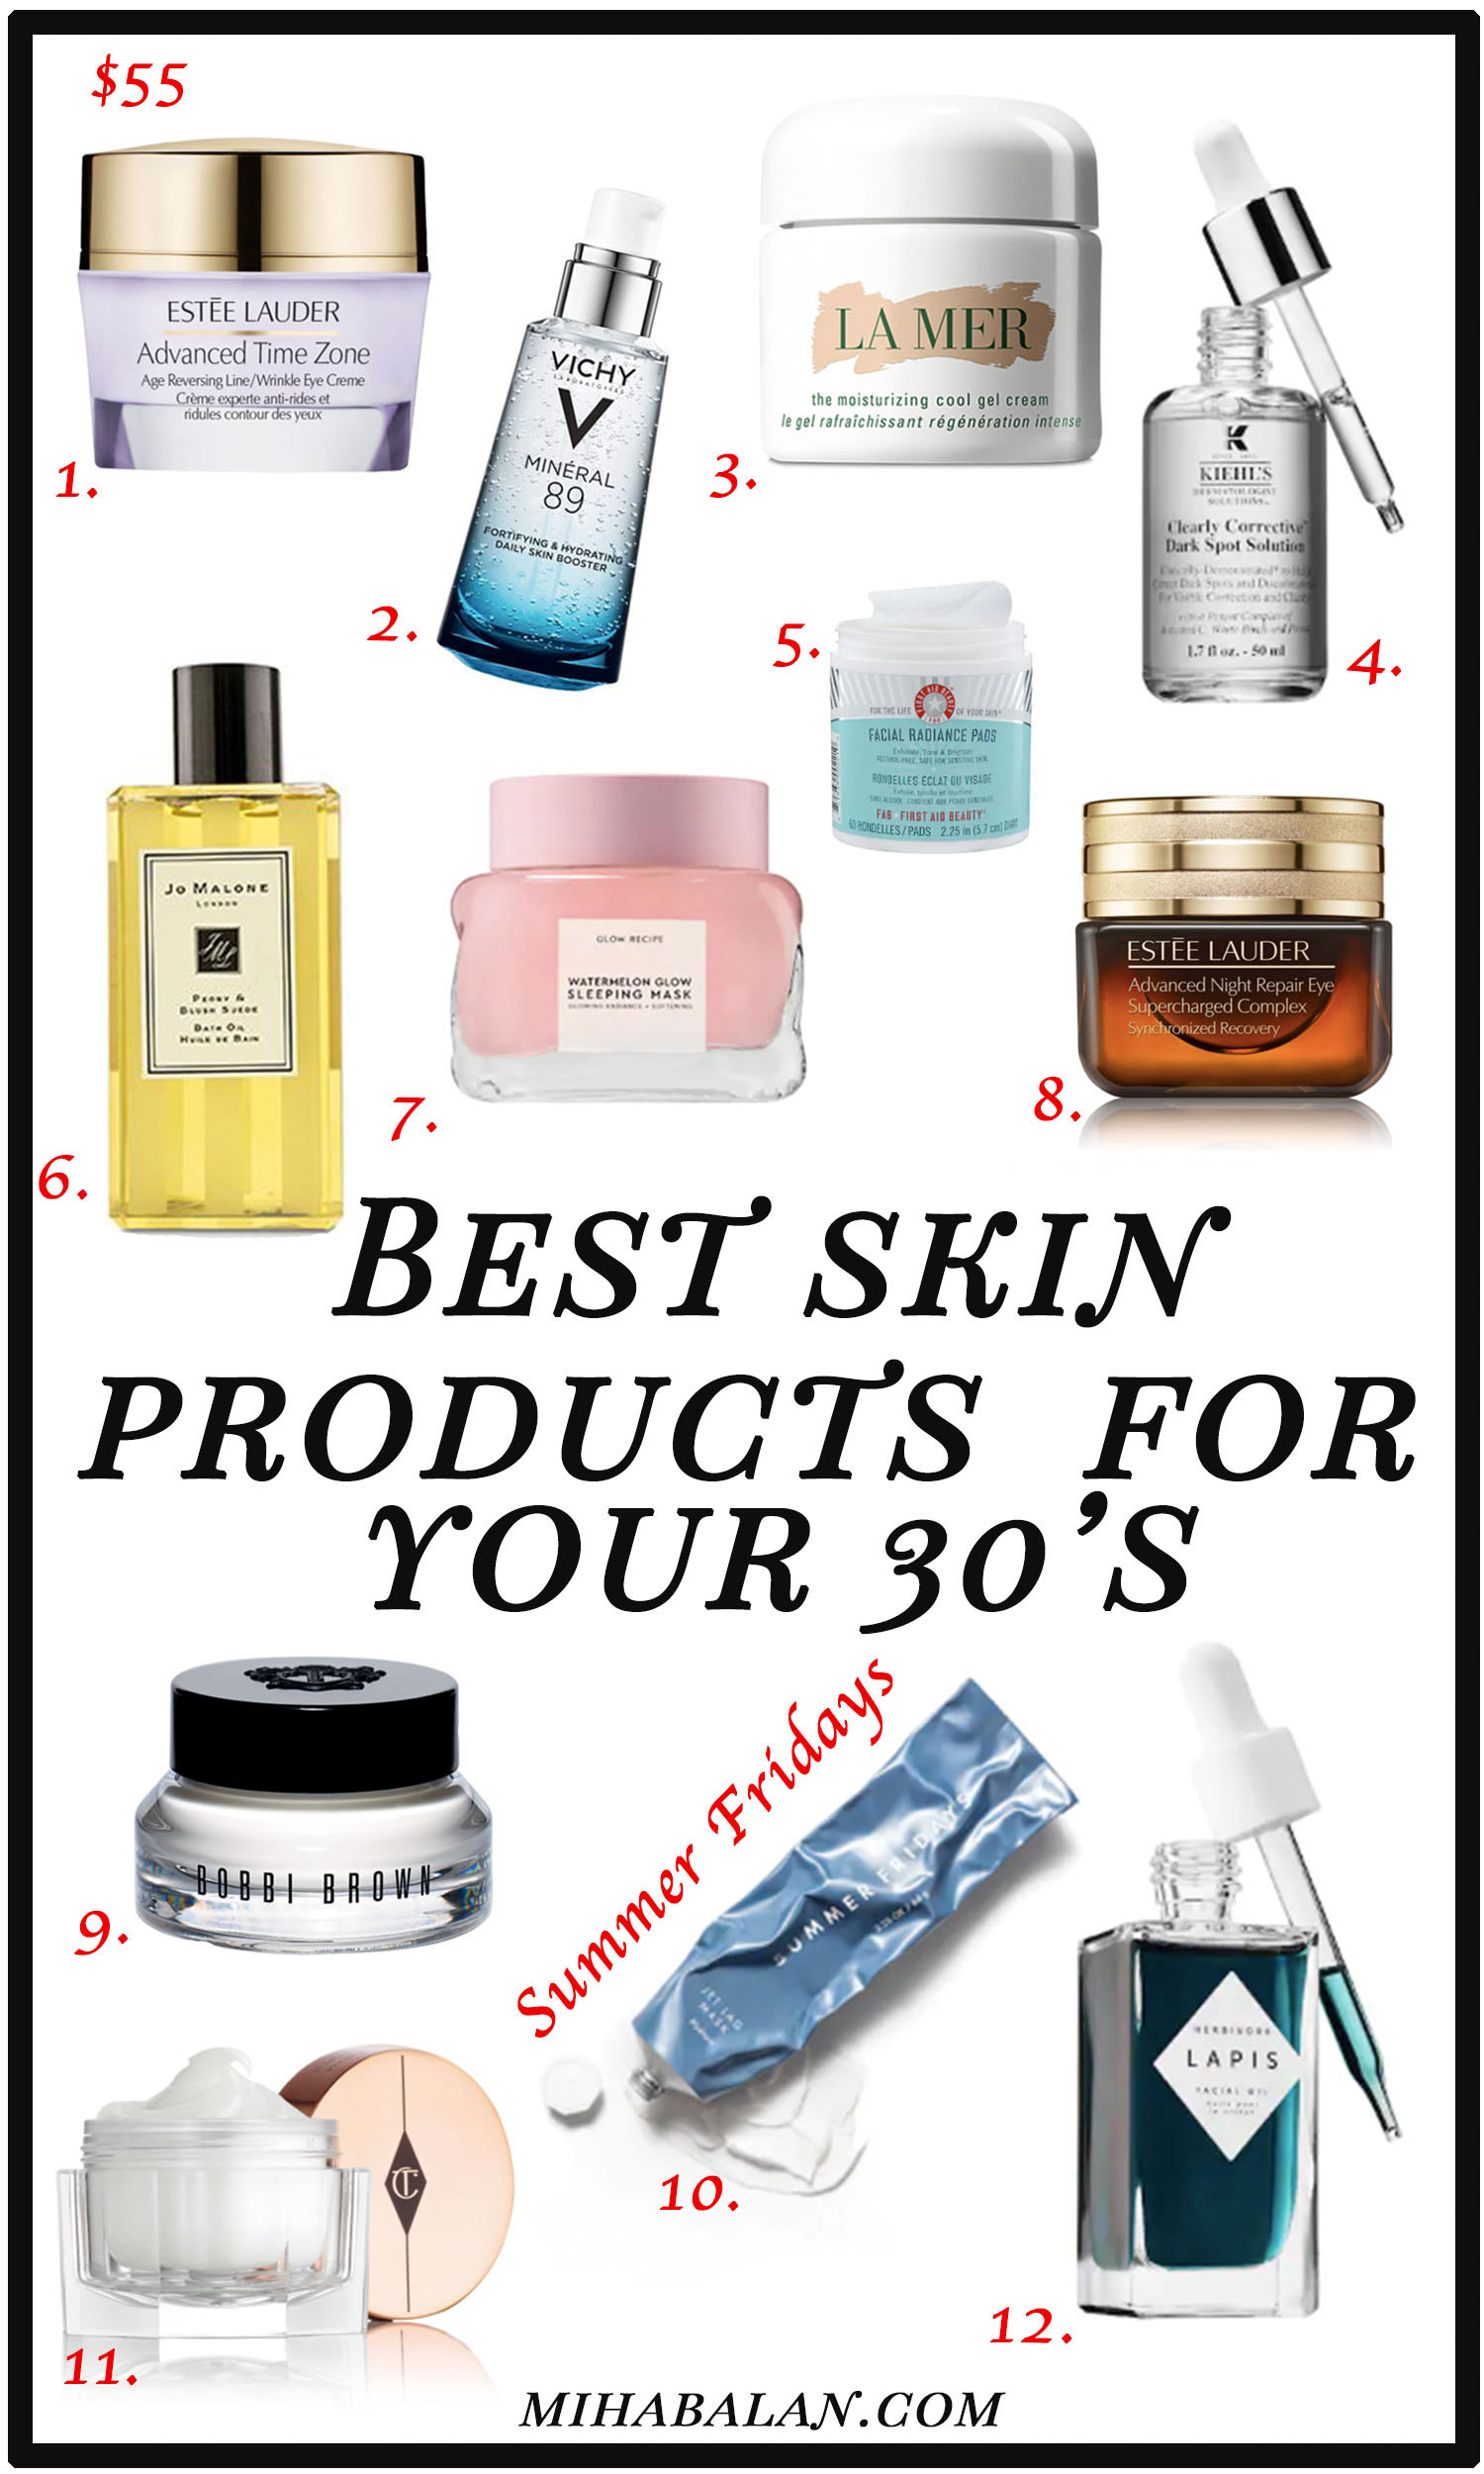 best skin products for your 30's, face cream, serums, face masks, 4 ways to take care of your skin in your 30's, wellness, self love, self care, mihabalan.com